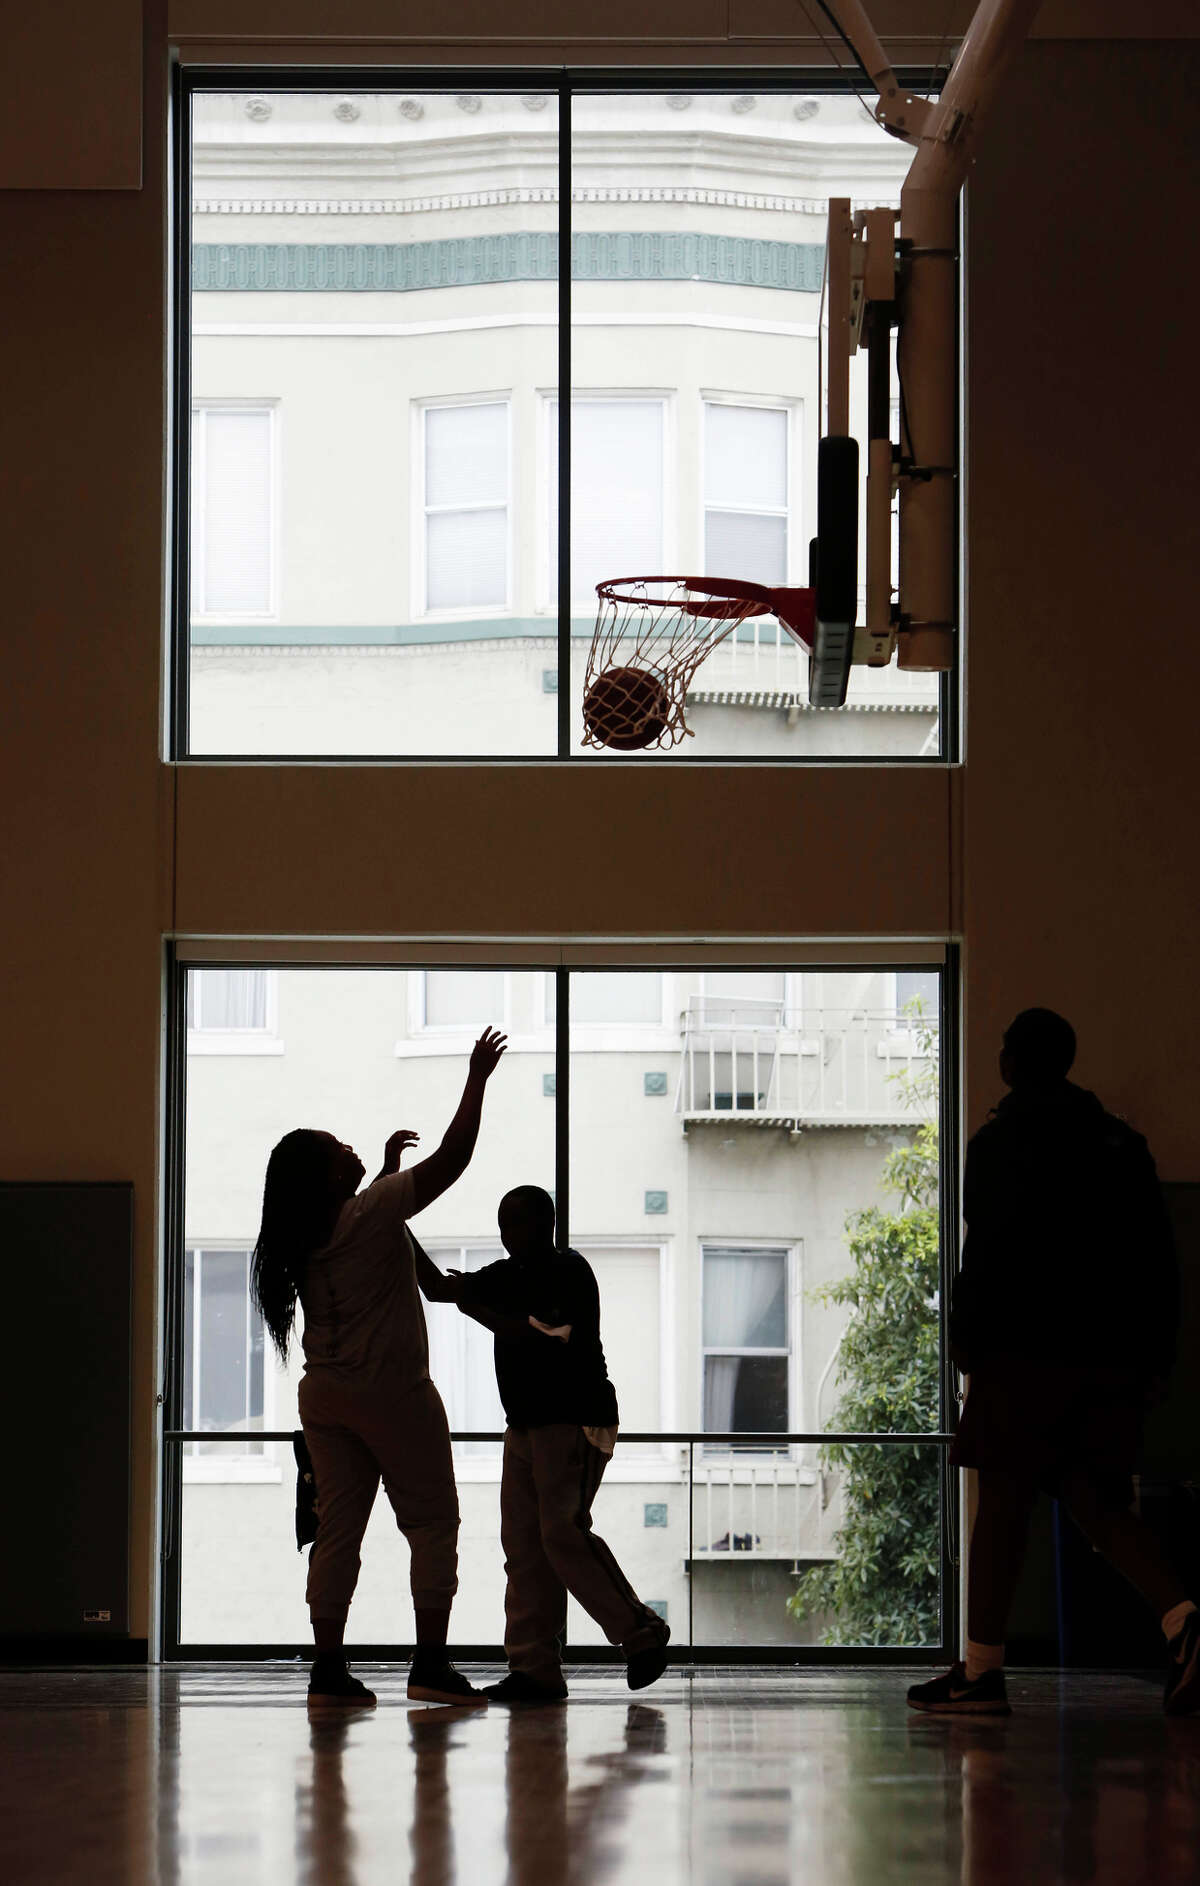 Children play on the basketball court in front of the ample windows in the gym of the impressive new Boys & Girls Club building on Fulton Street near Civic Center.